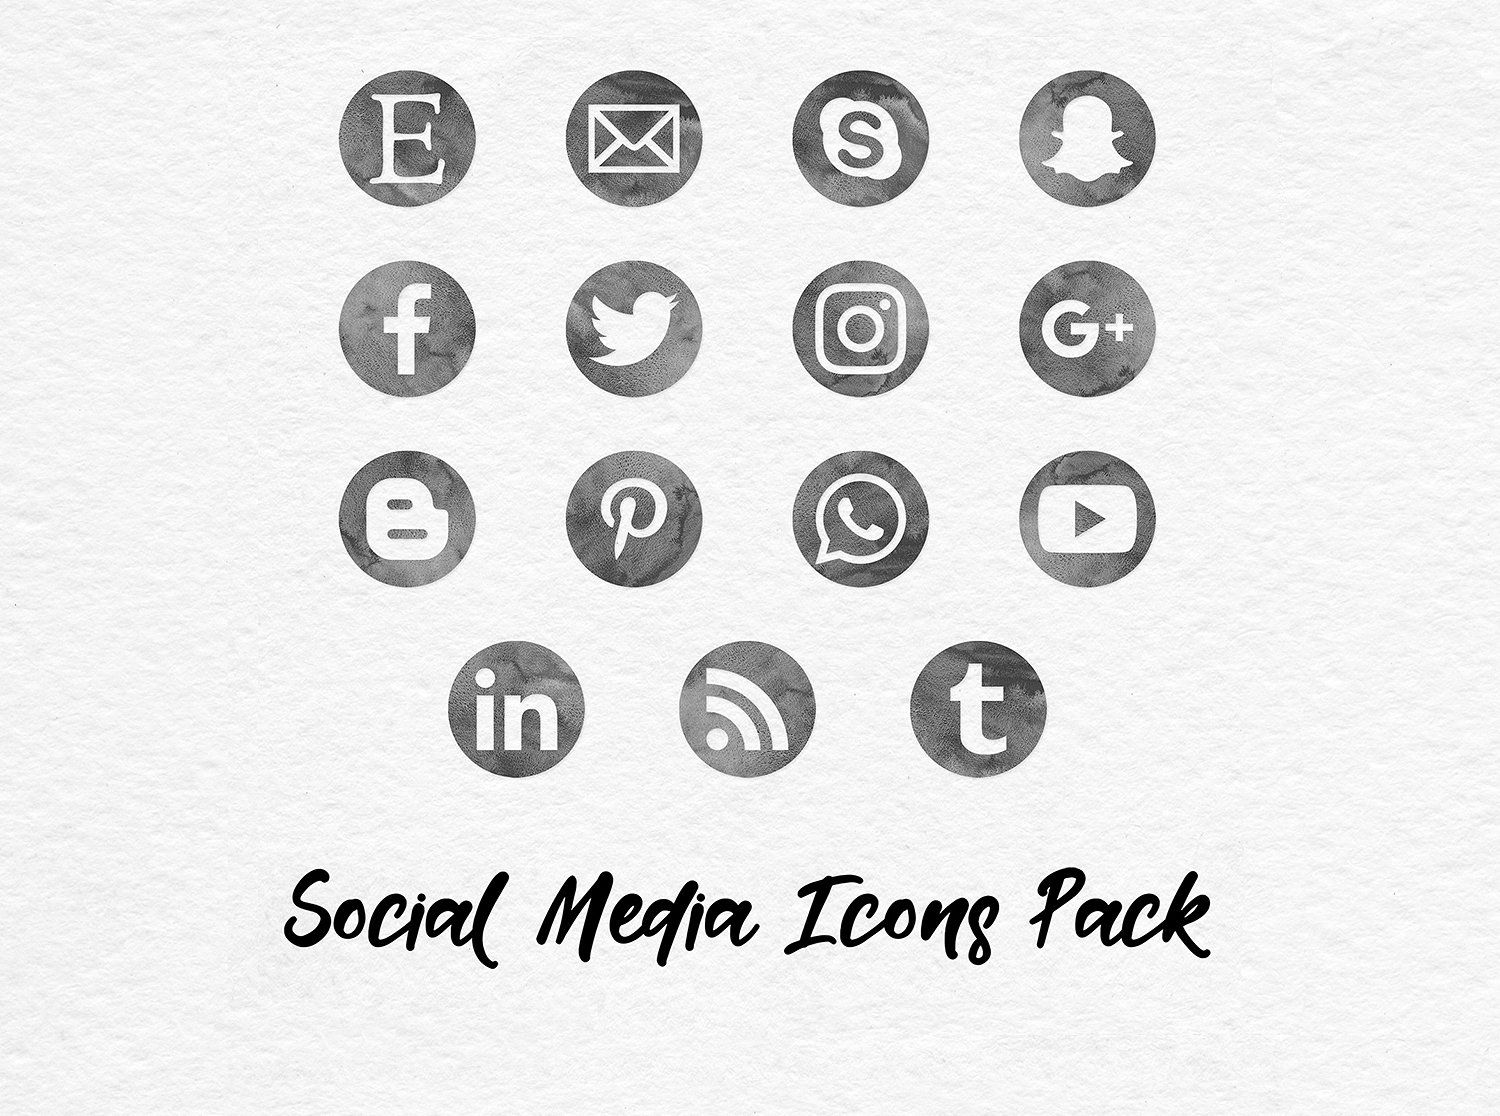 Grey Watercolor Social Media Icons Social Media Icons Media Icon Facebook And Instagram Logo